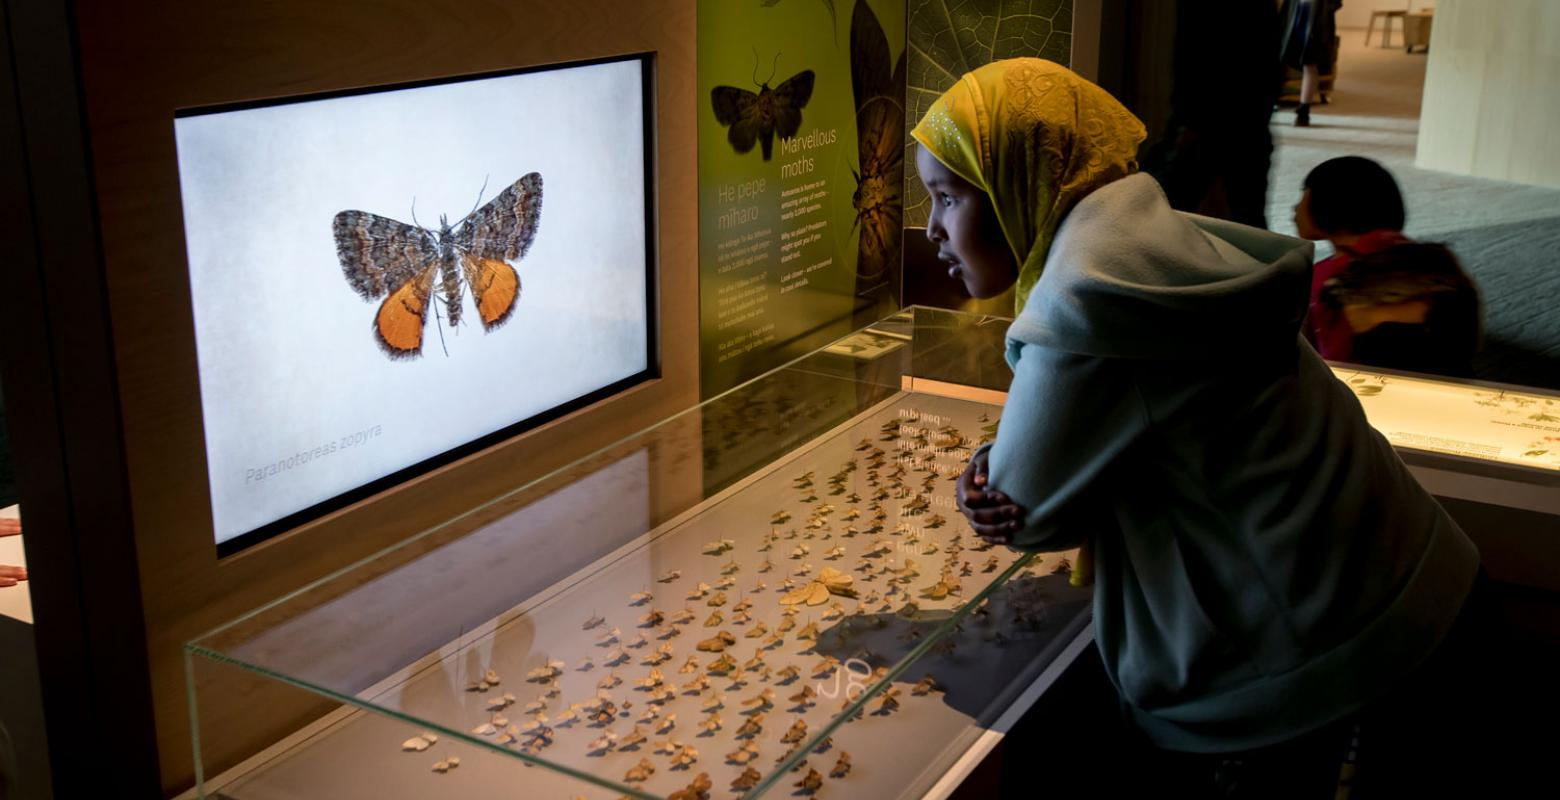 A child looks at New Zealand moths